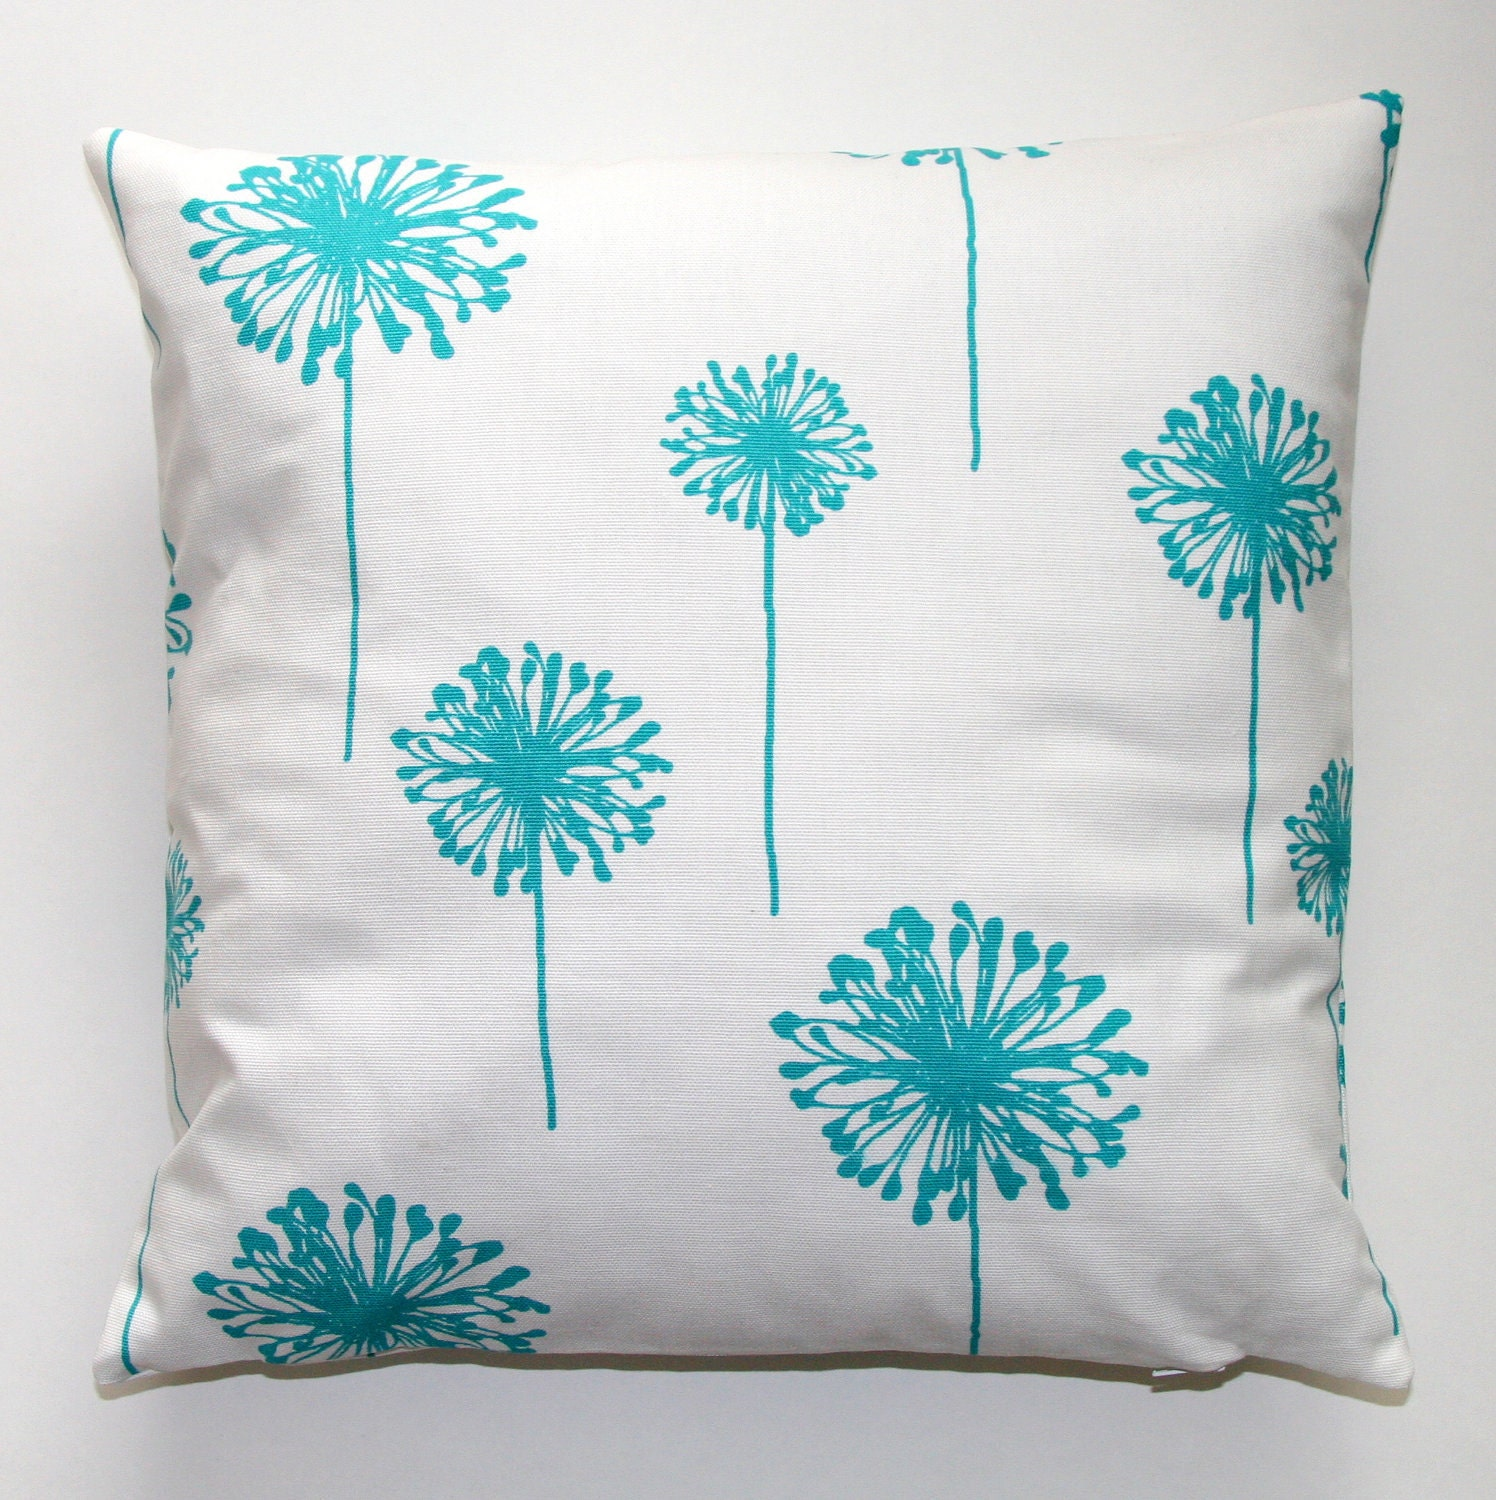 Turquoise Dandelion Pillow Cover- 16x16 inches- Zipper Closure